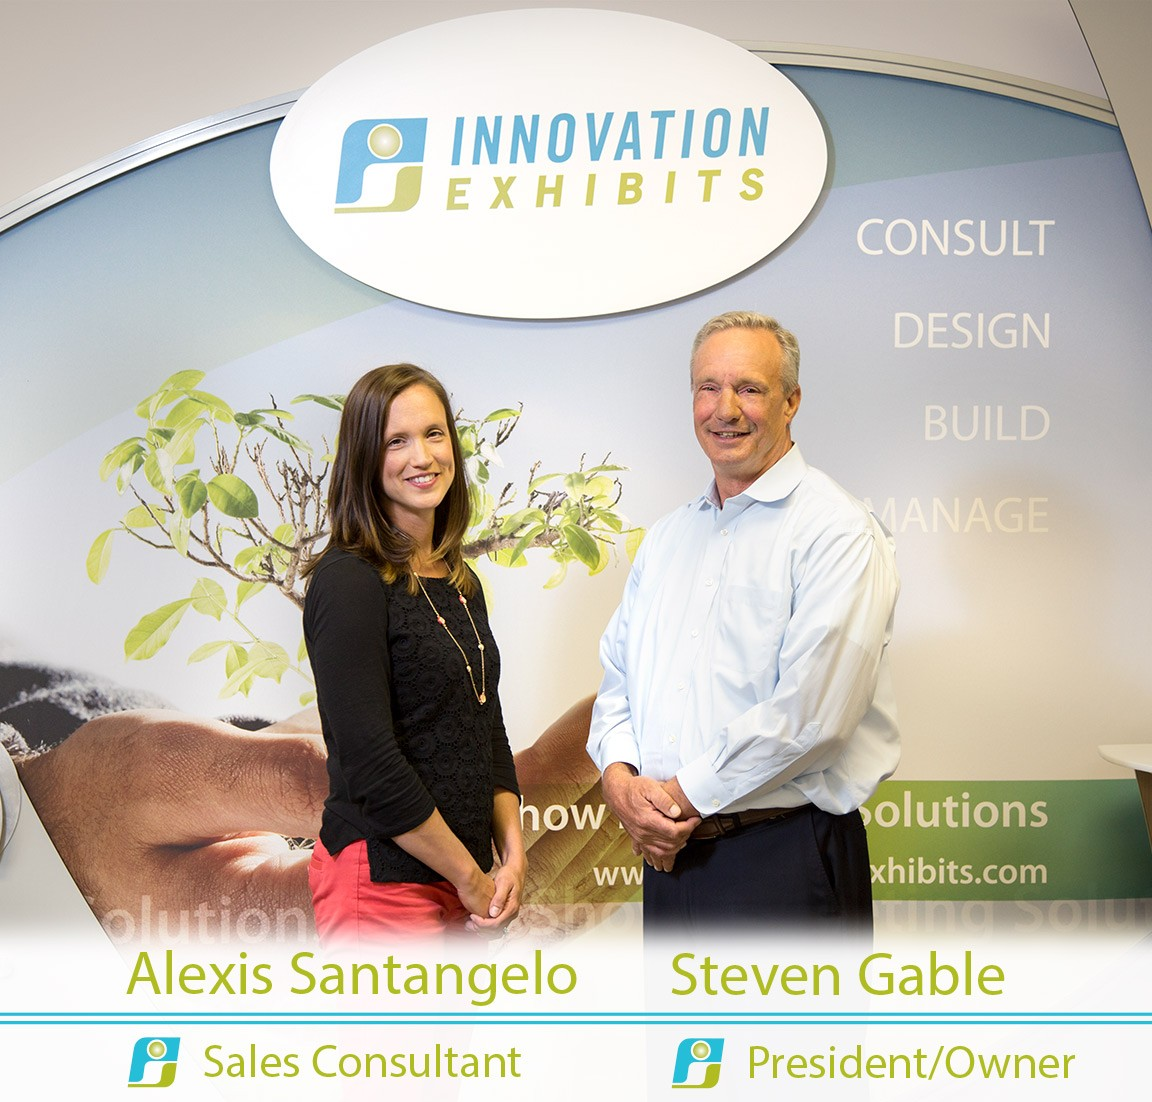 About Innovation Exhibits